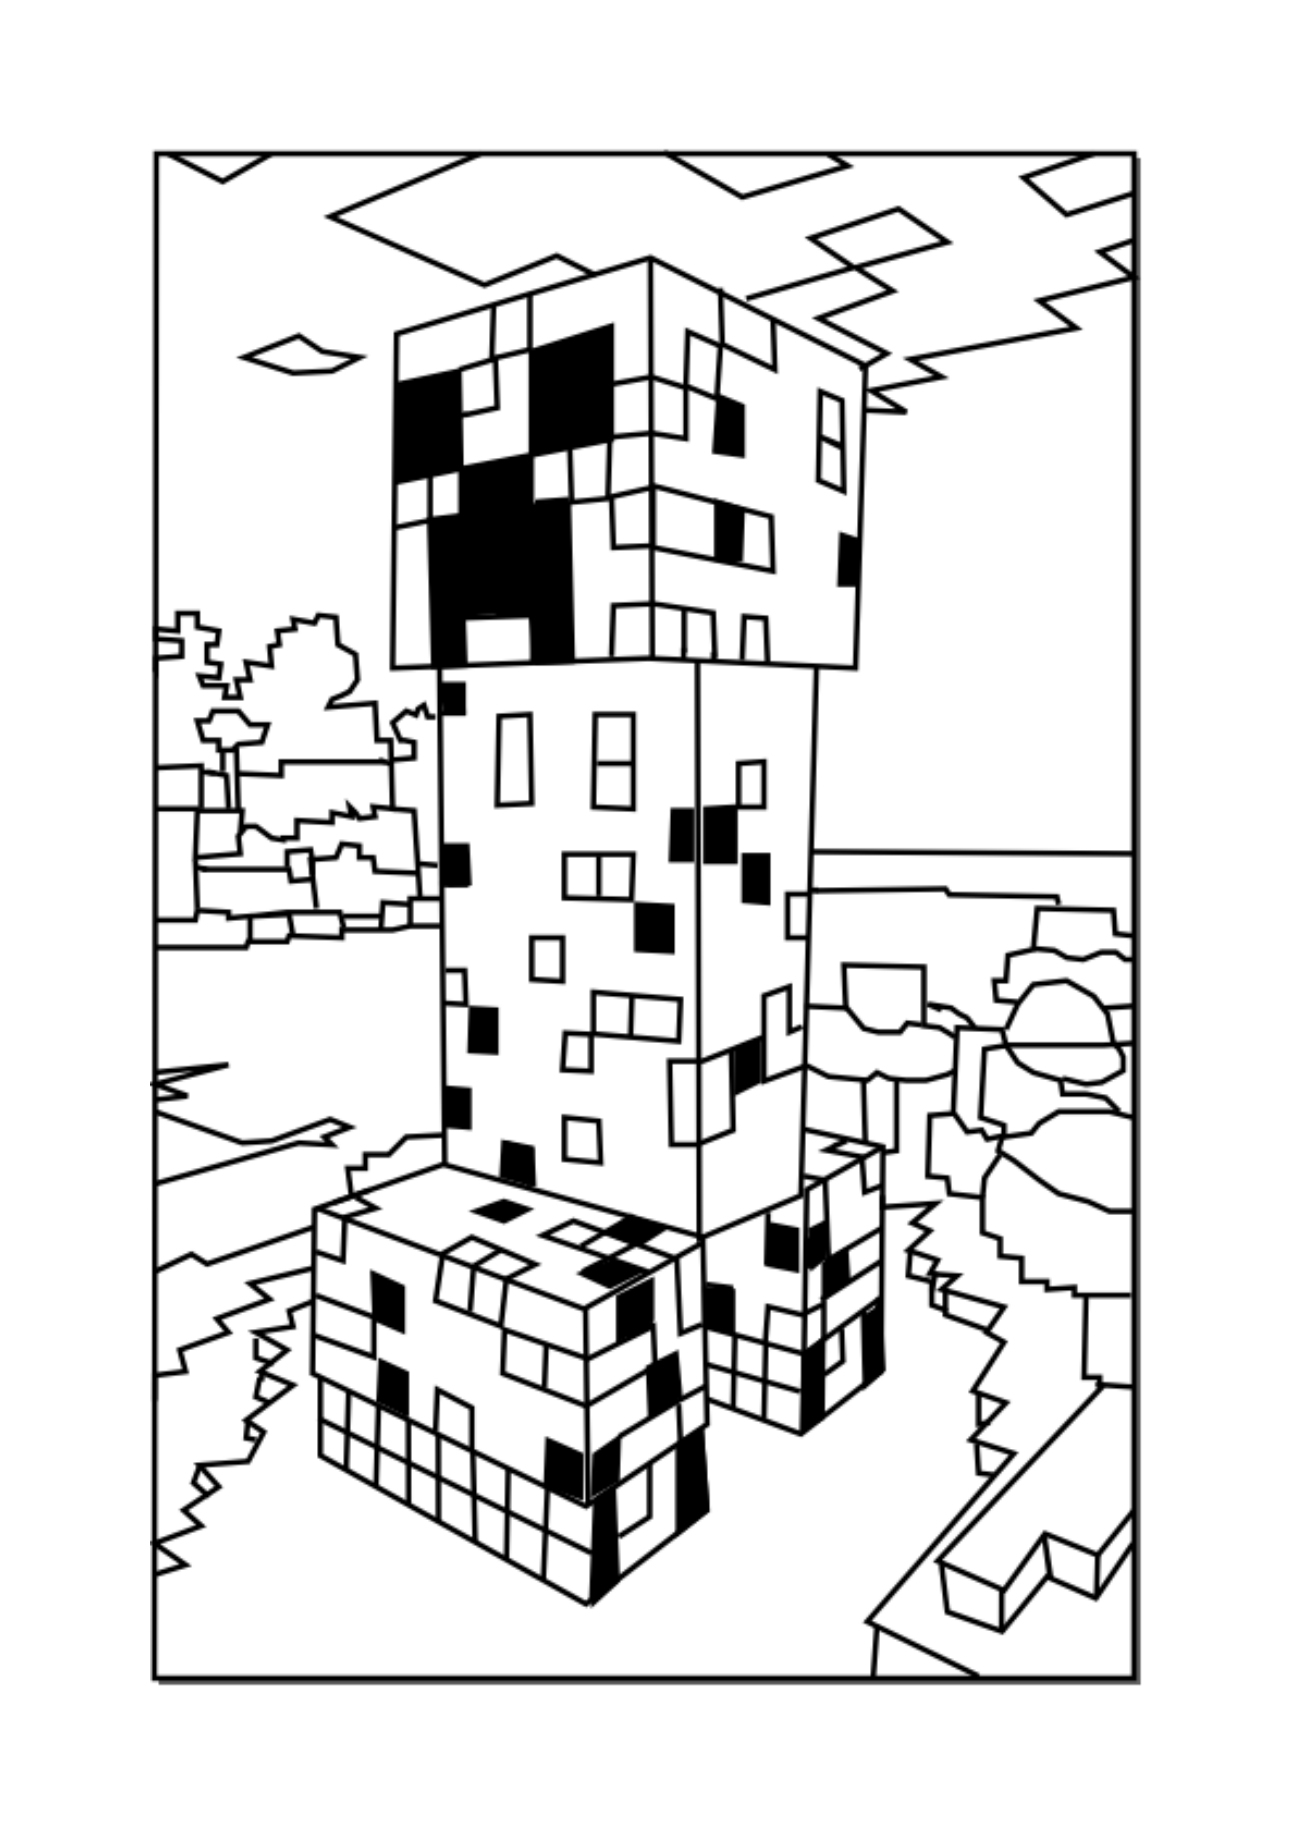 coloring pages minecraft free printable minecraft coloring pages minecraft coloring pages